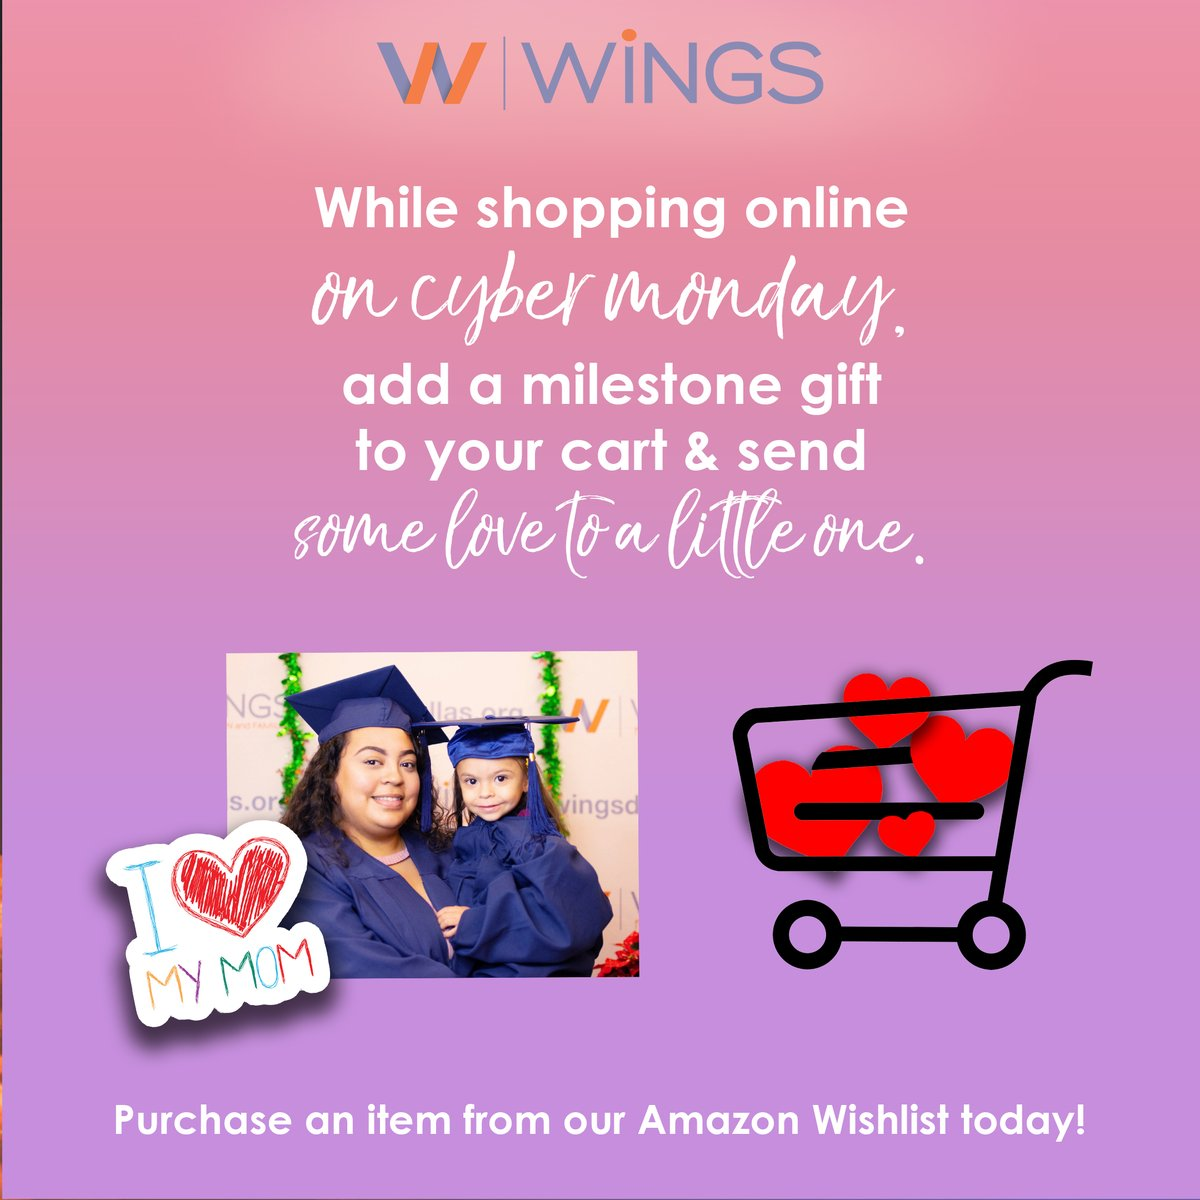 test Twitter Media - Baby fever on Cyber Monday? Add a milestone gift to your Amazon cart today and your gift will go directly to moms living under the poverty line right here in our Dallas community. Check our our wishlist here to see what items are most needed: https://t.co/GyxM9MpVHt  #thankyou https://t.co/frrKW6B6y7